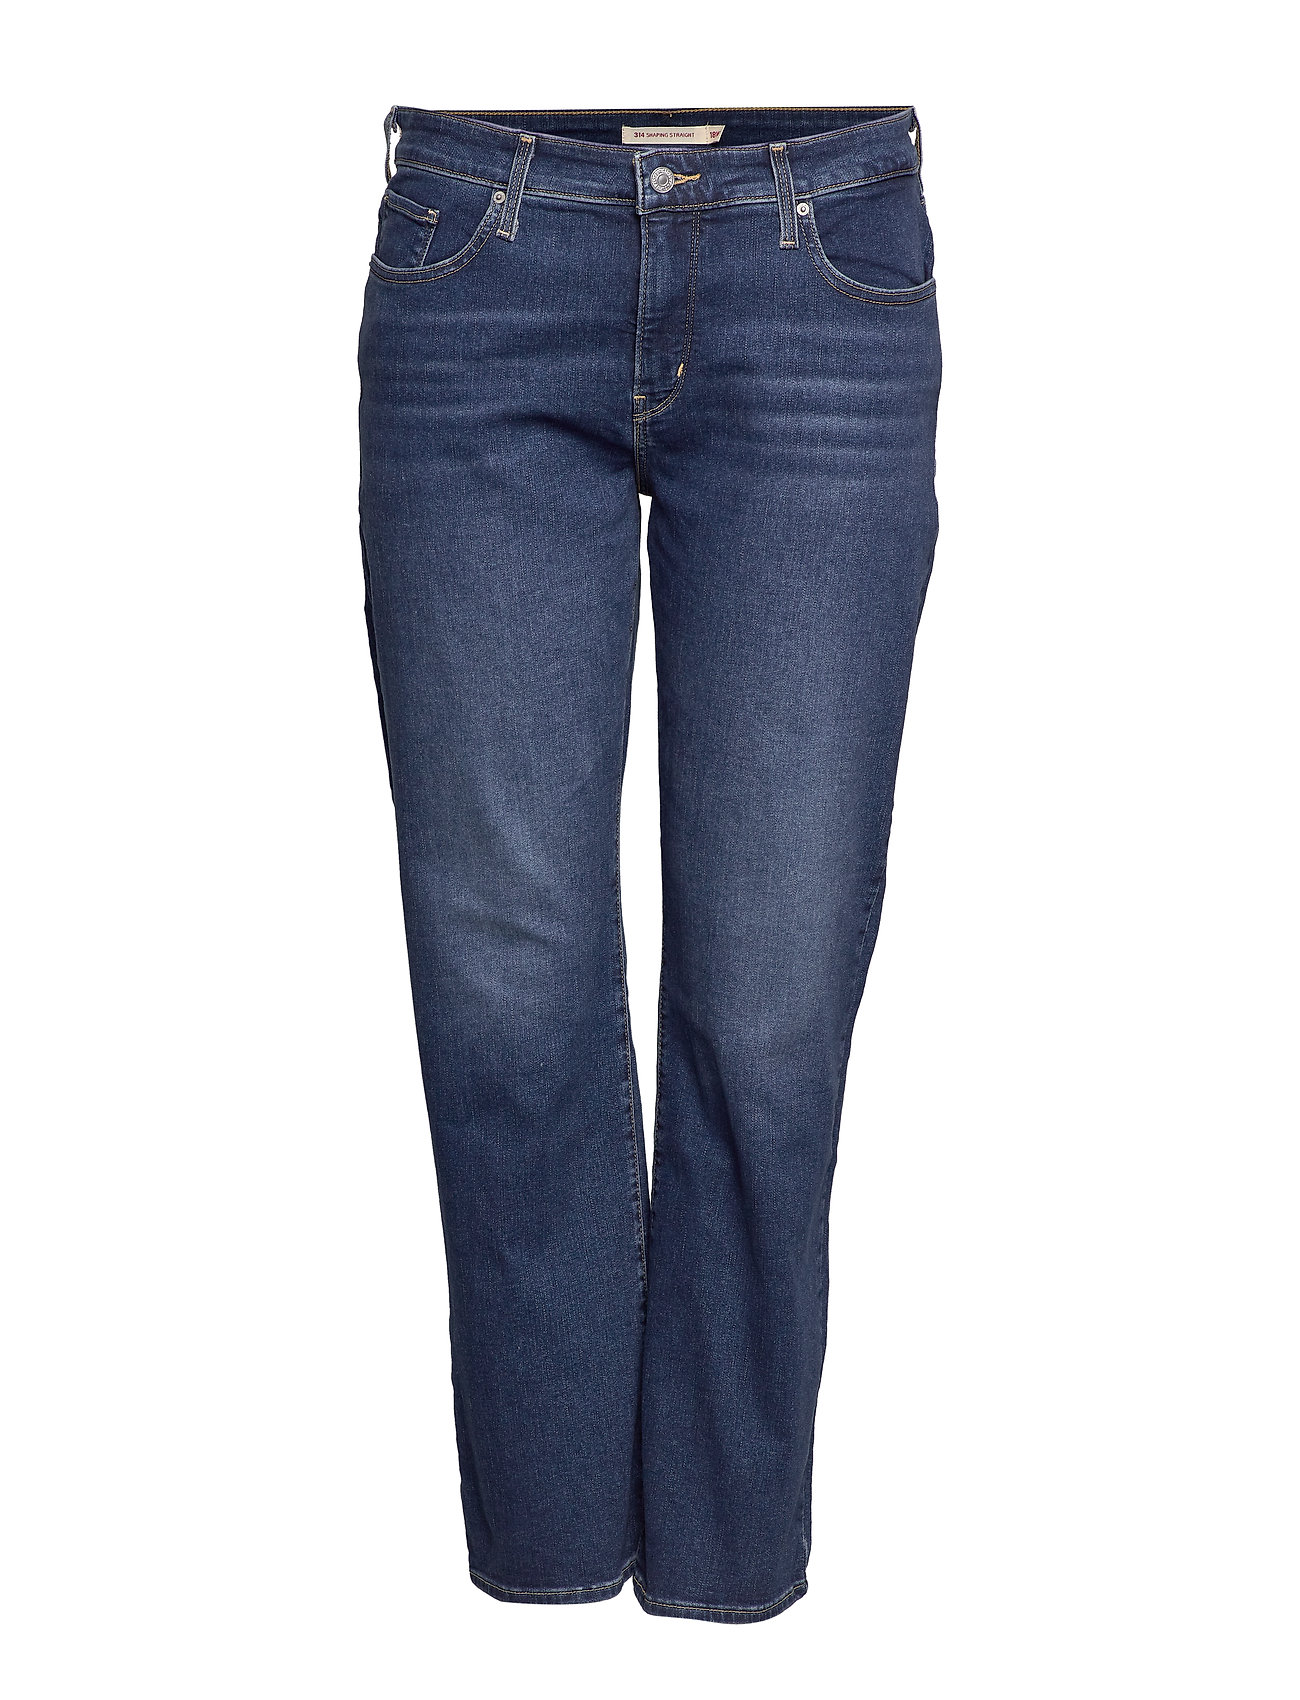 Levi's Plus Size 314 PL SHAPING STRAIGHT PARIS - MED INDIGO - WORN IN